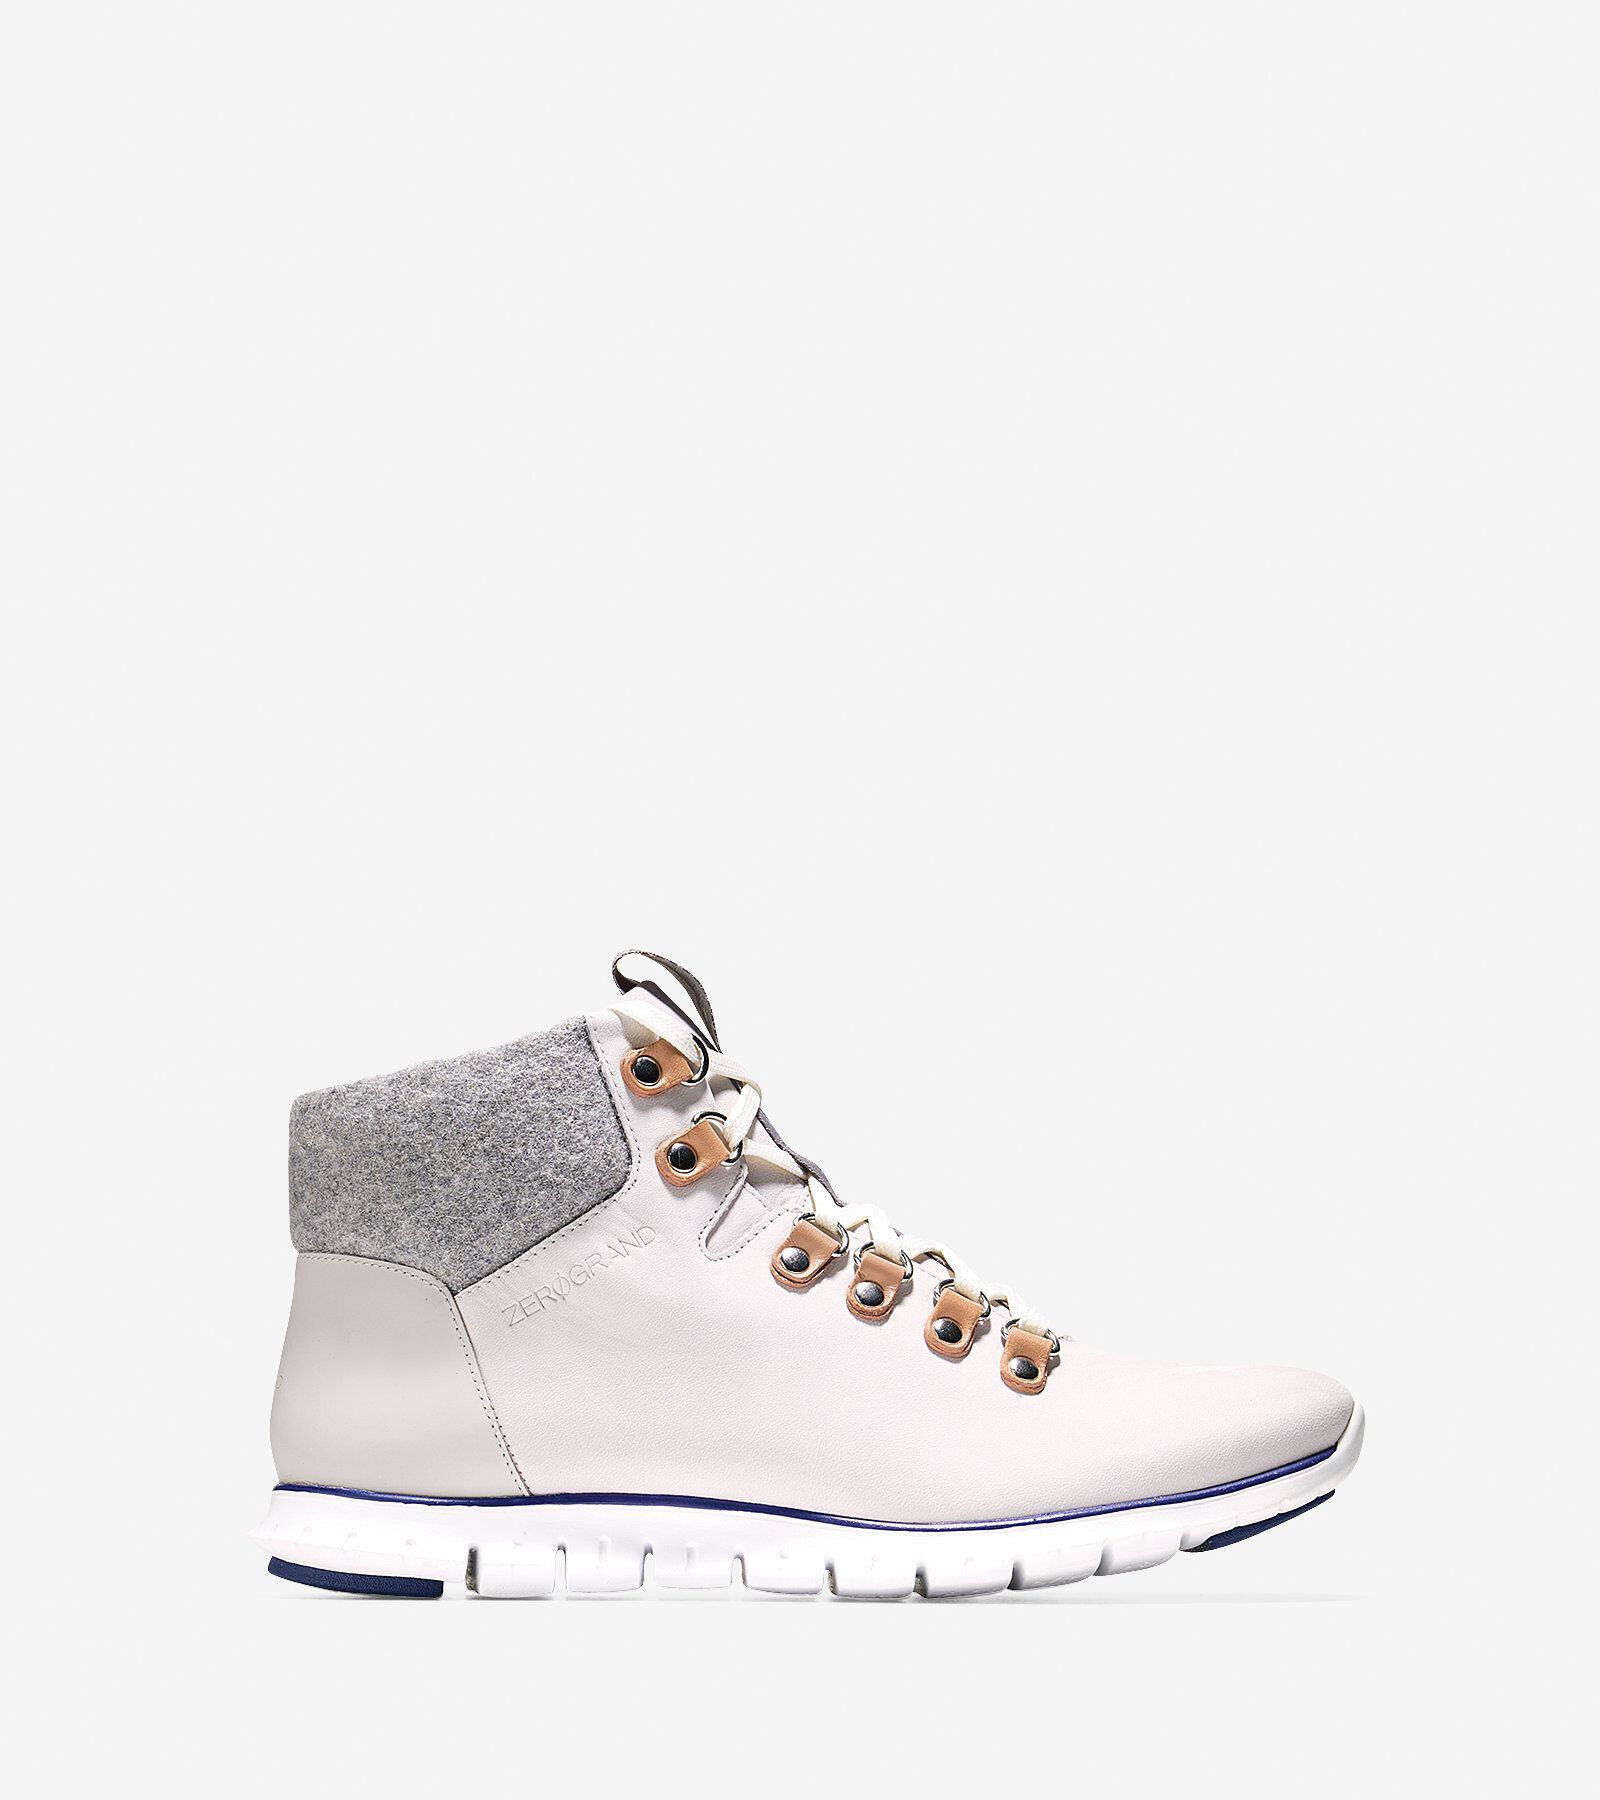 Cole Haan Zerogrand Hiking Sneakers jsdpjg